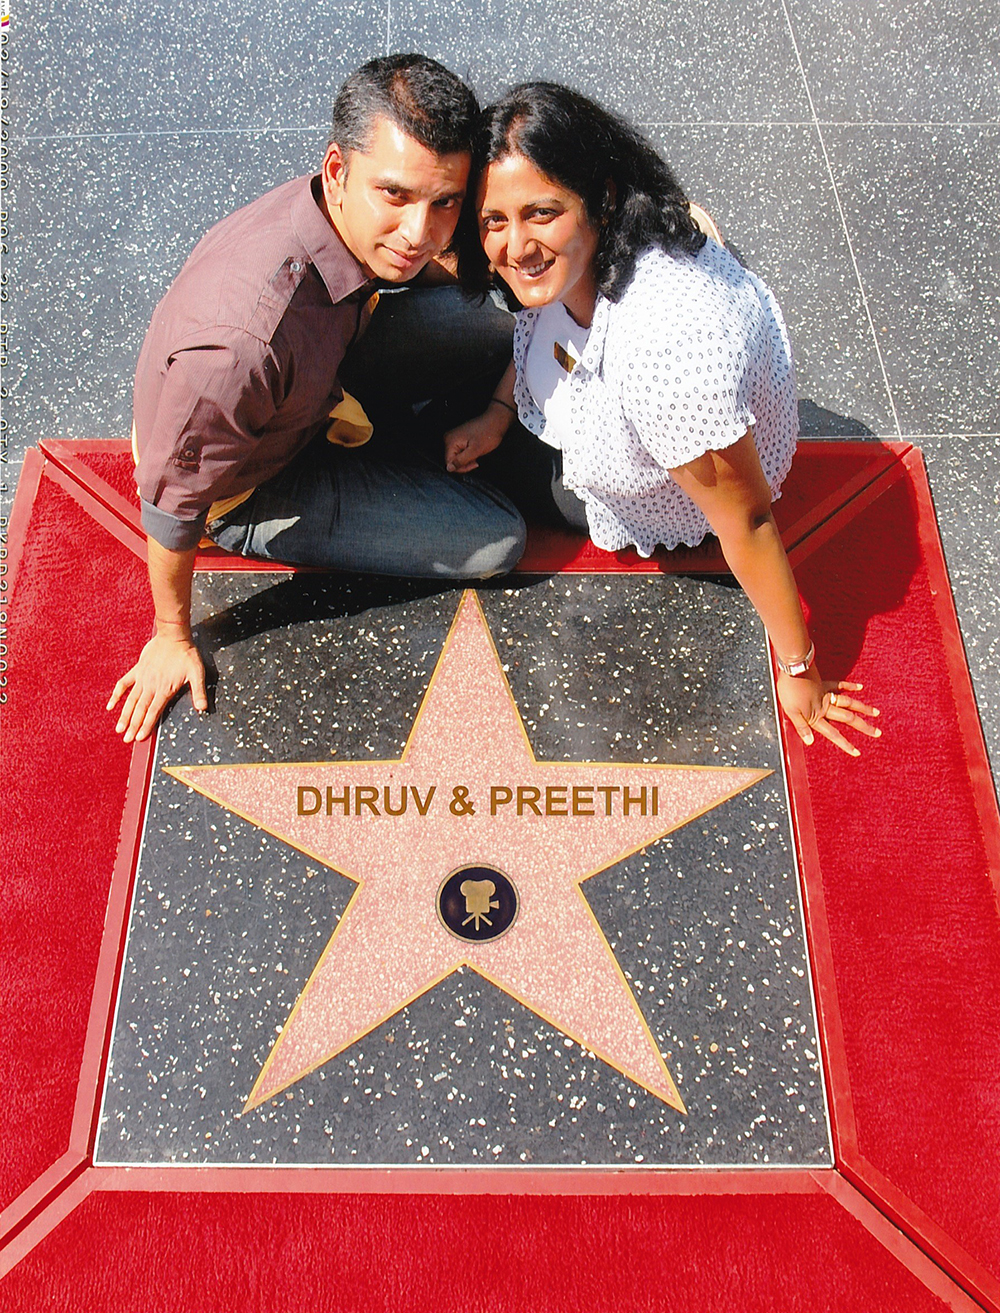 Preethi Dhruv Our Story 04